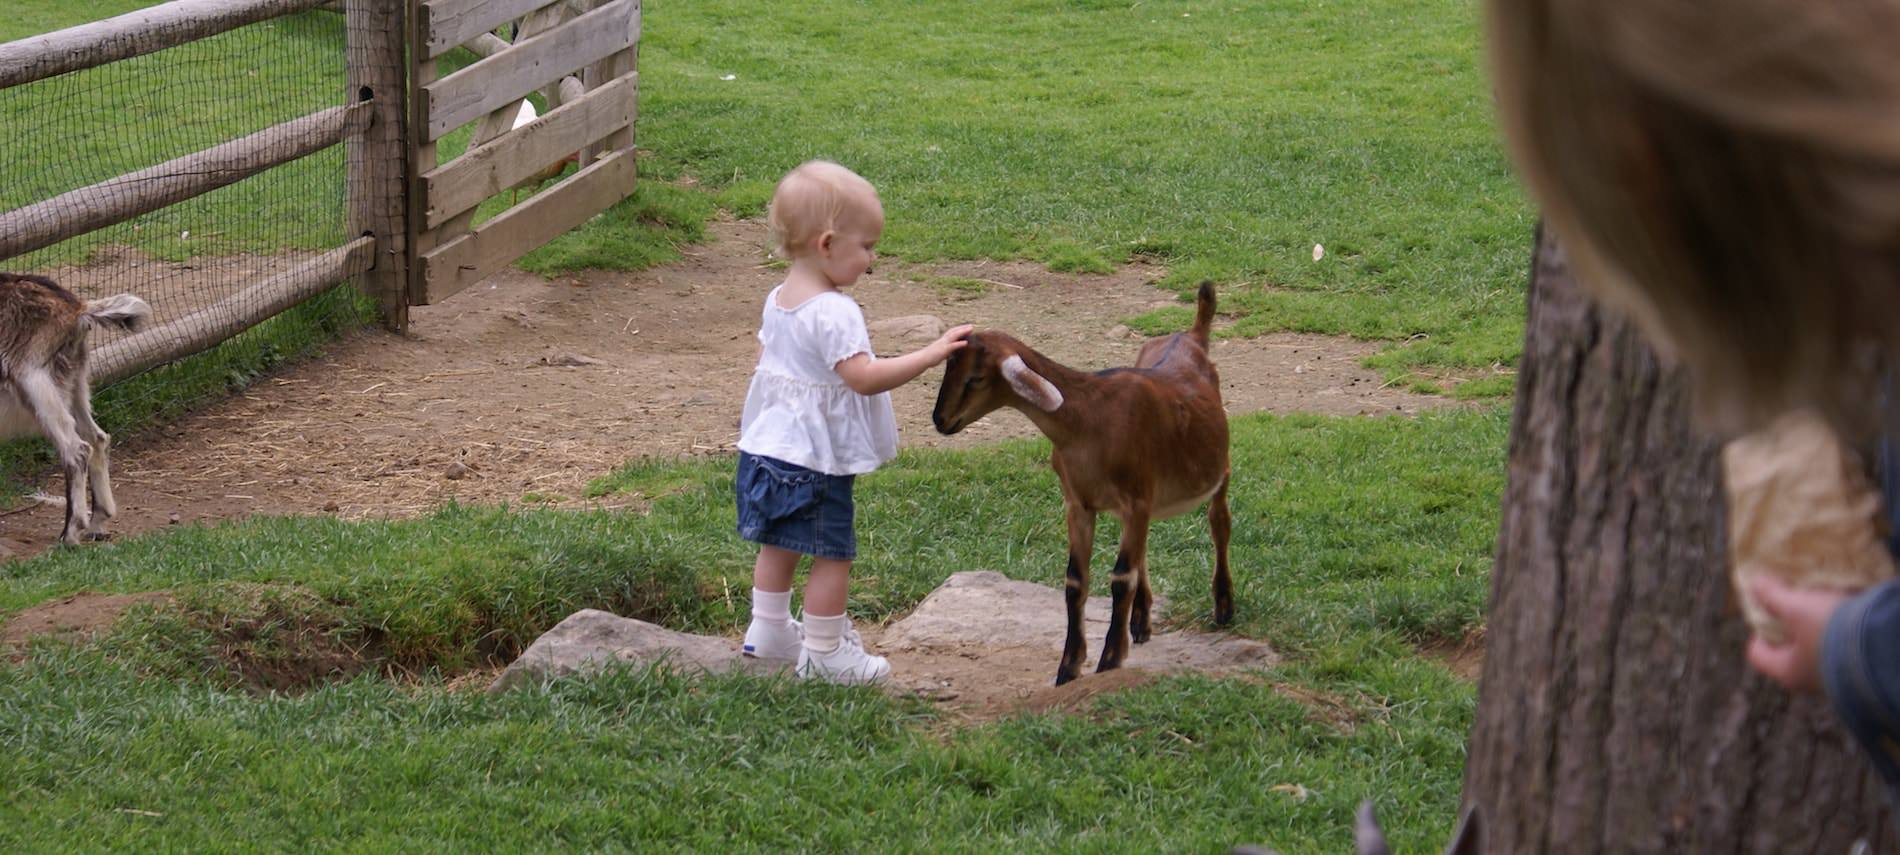 Small child petting a goat amidst grass and fencing